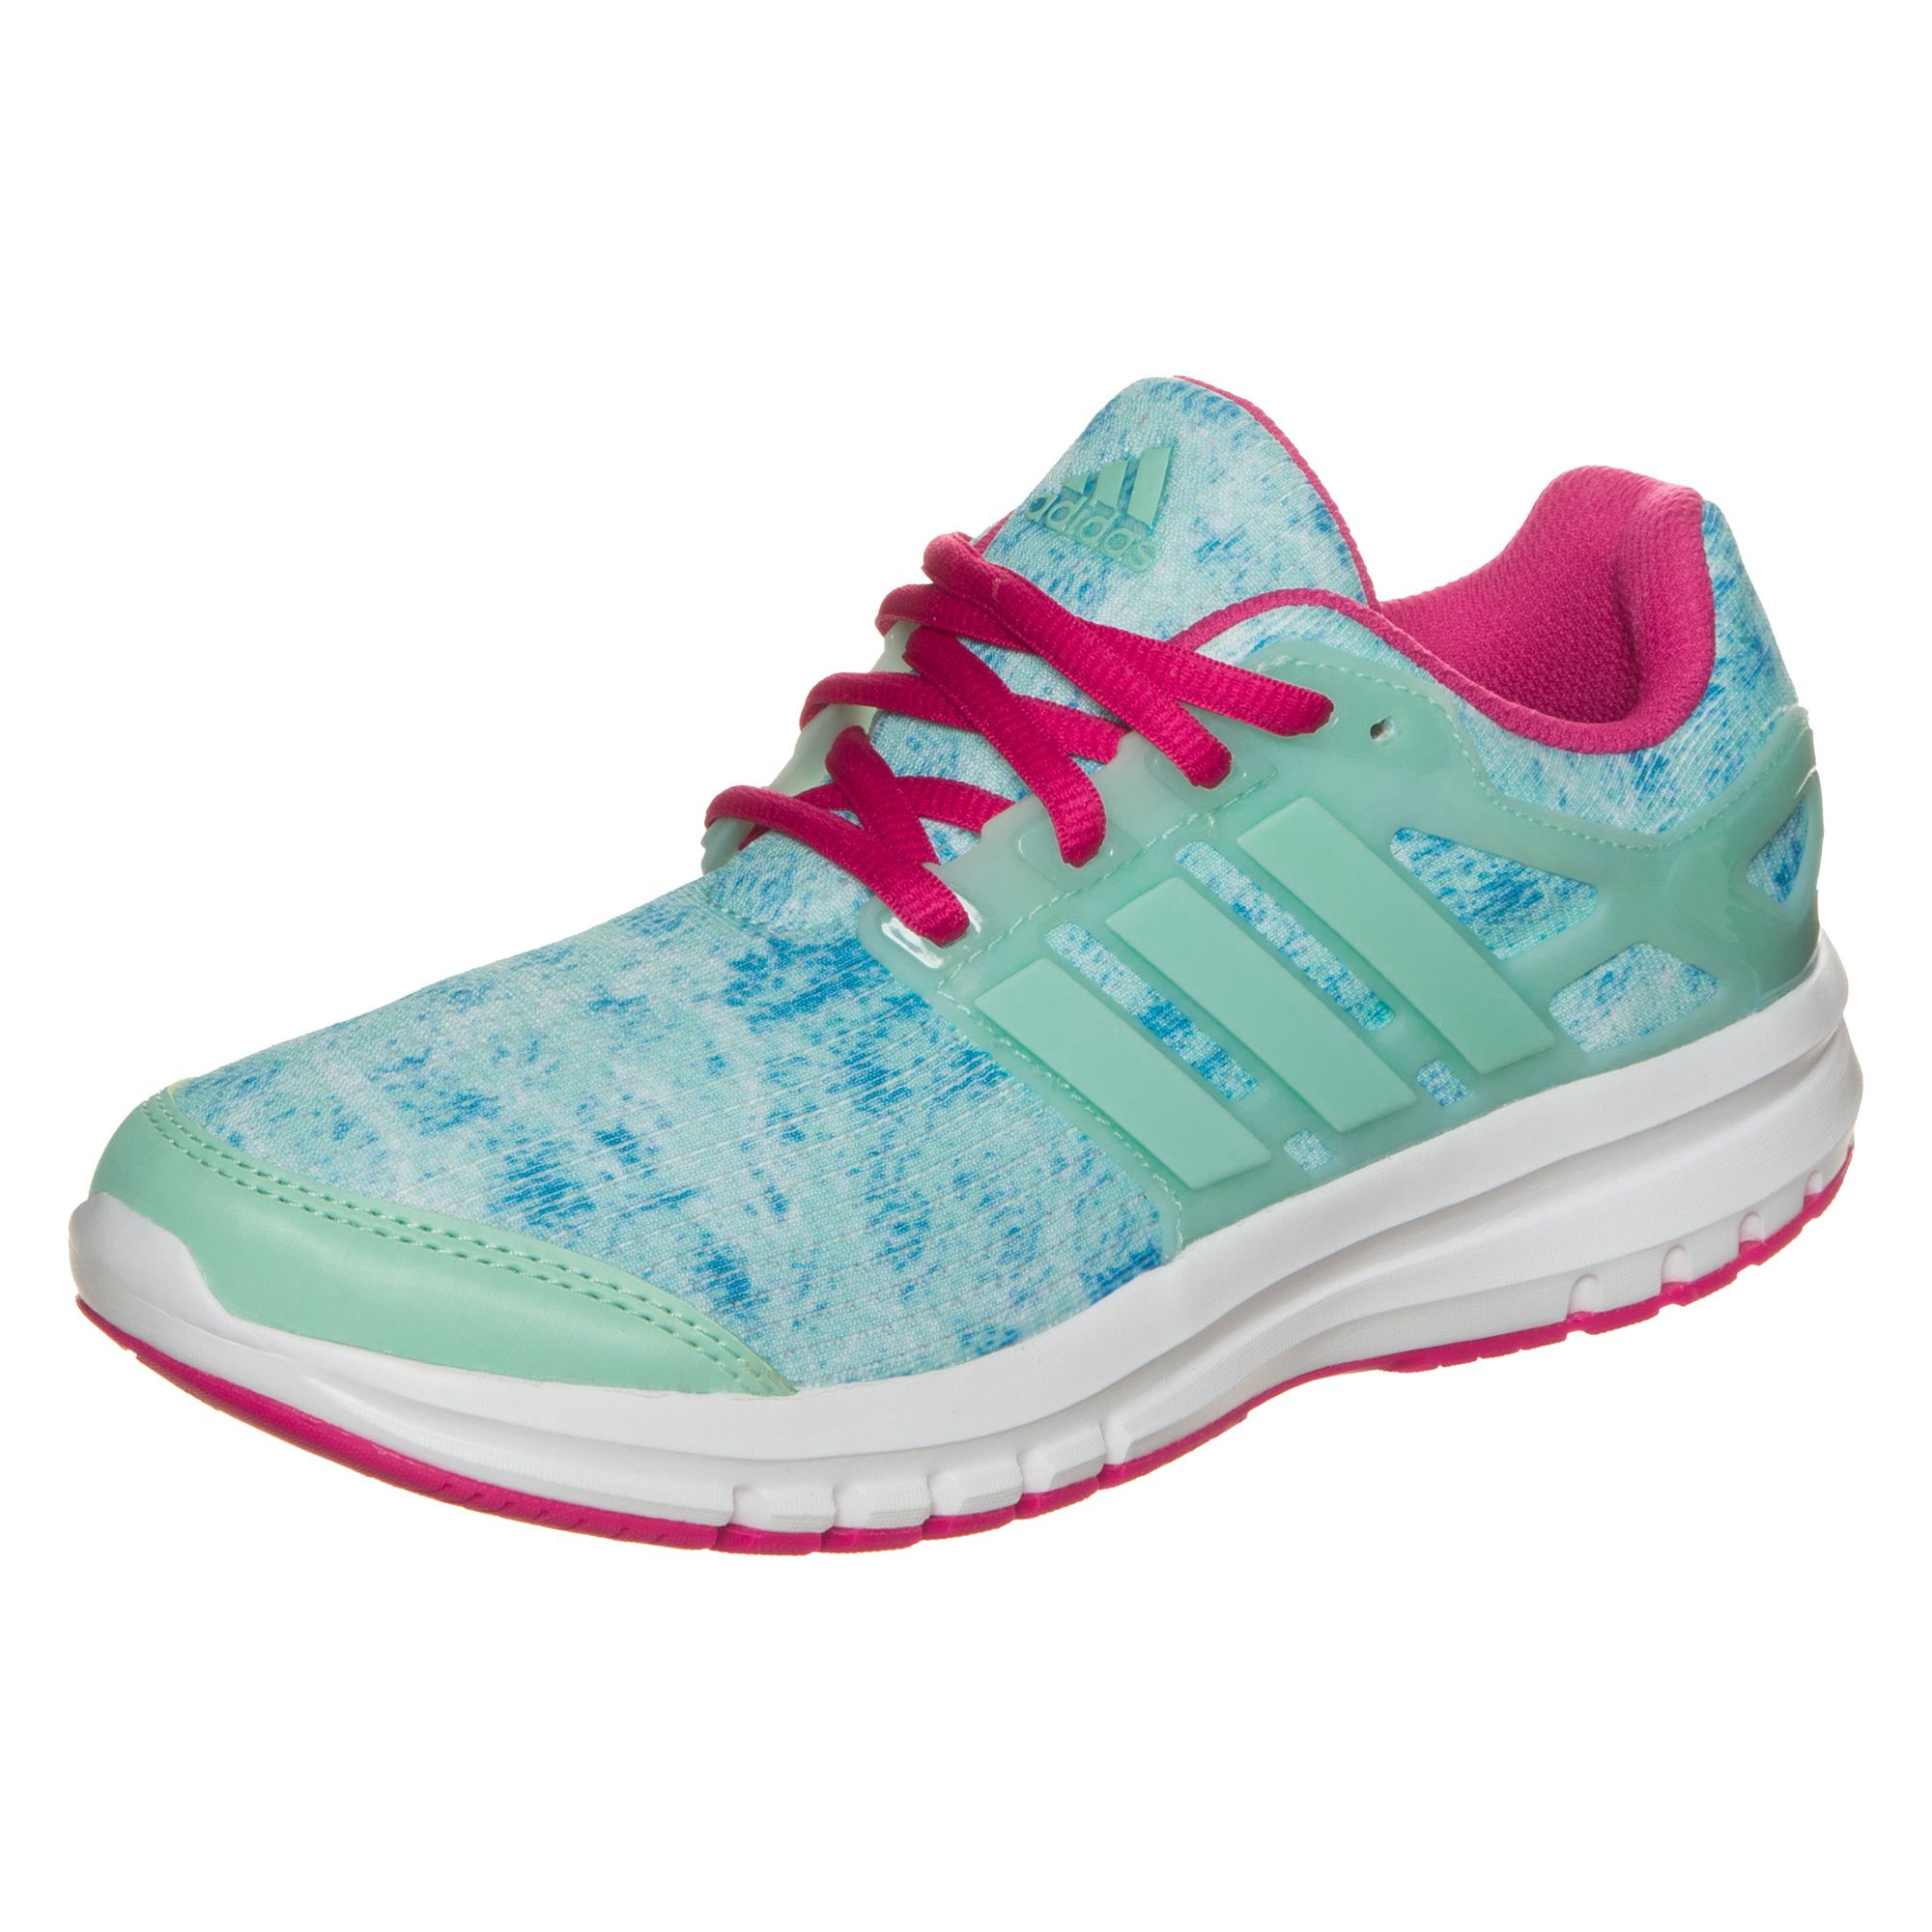 ADIDAS PERFORMANCE adidas Performance Energy Cloud Laufschuh Kinder